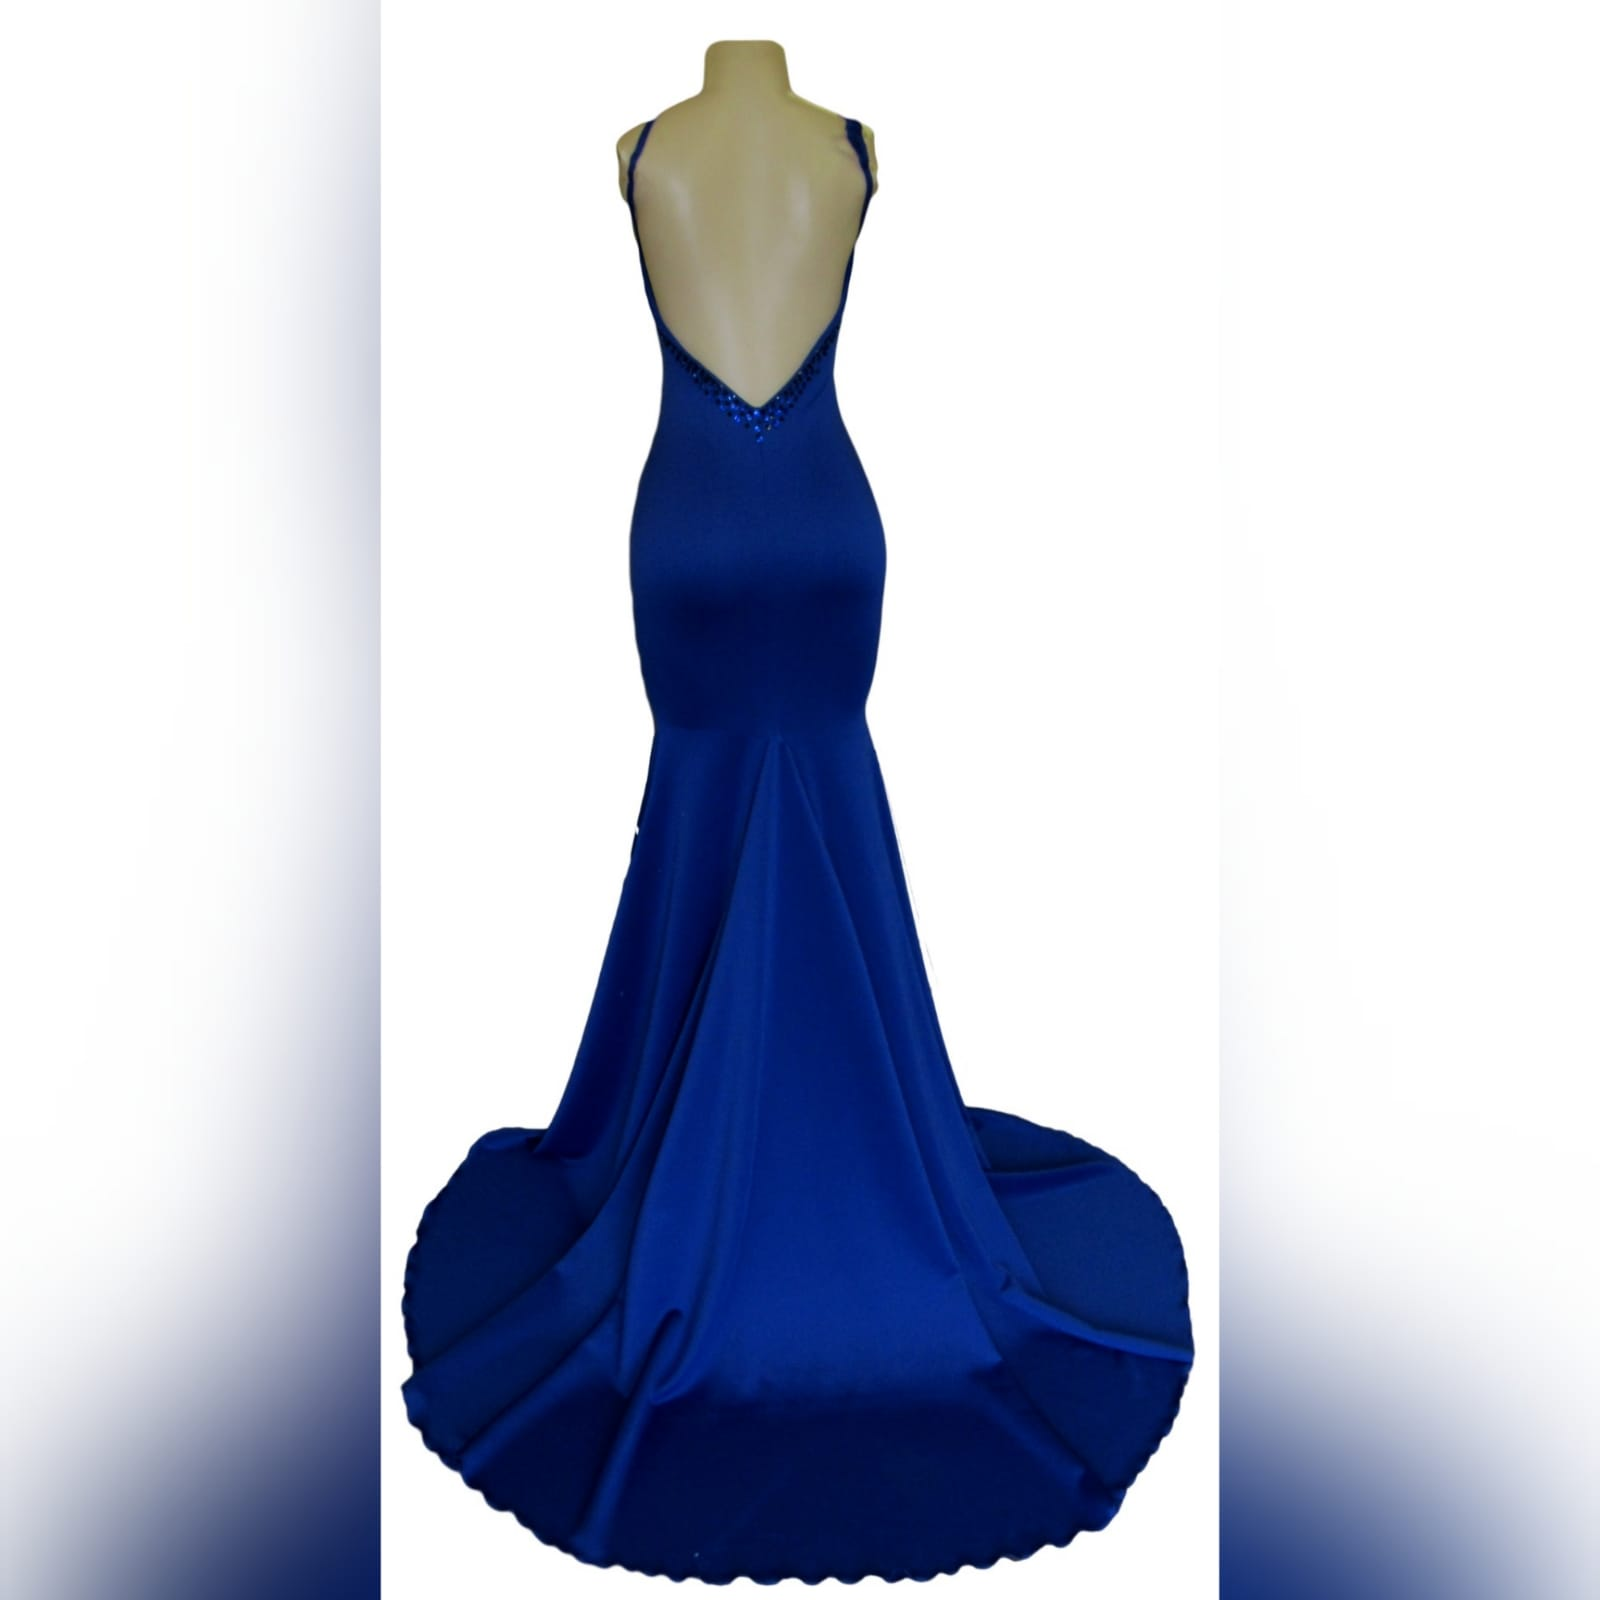 Royal blue soft mermaid beaded prom dress 7 royal blue soft mermaid beaded prom dress, with a v neckline, low v open back detailed with blue and black beads, thin shoulder straps and a long train.